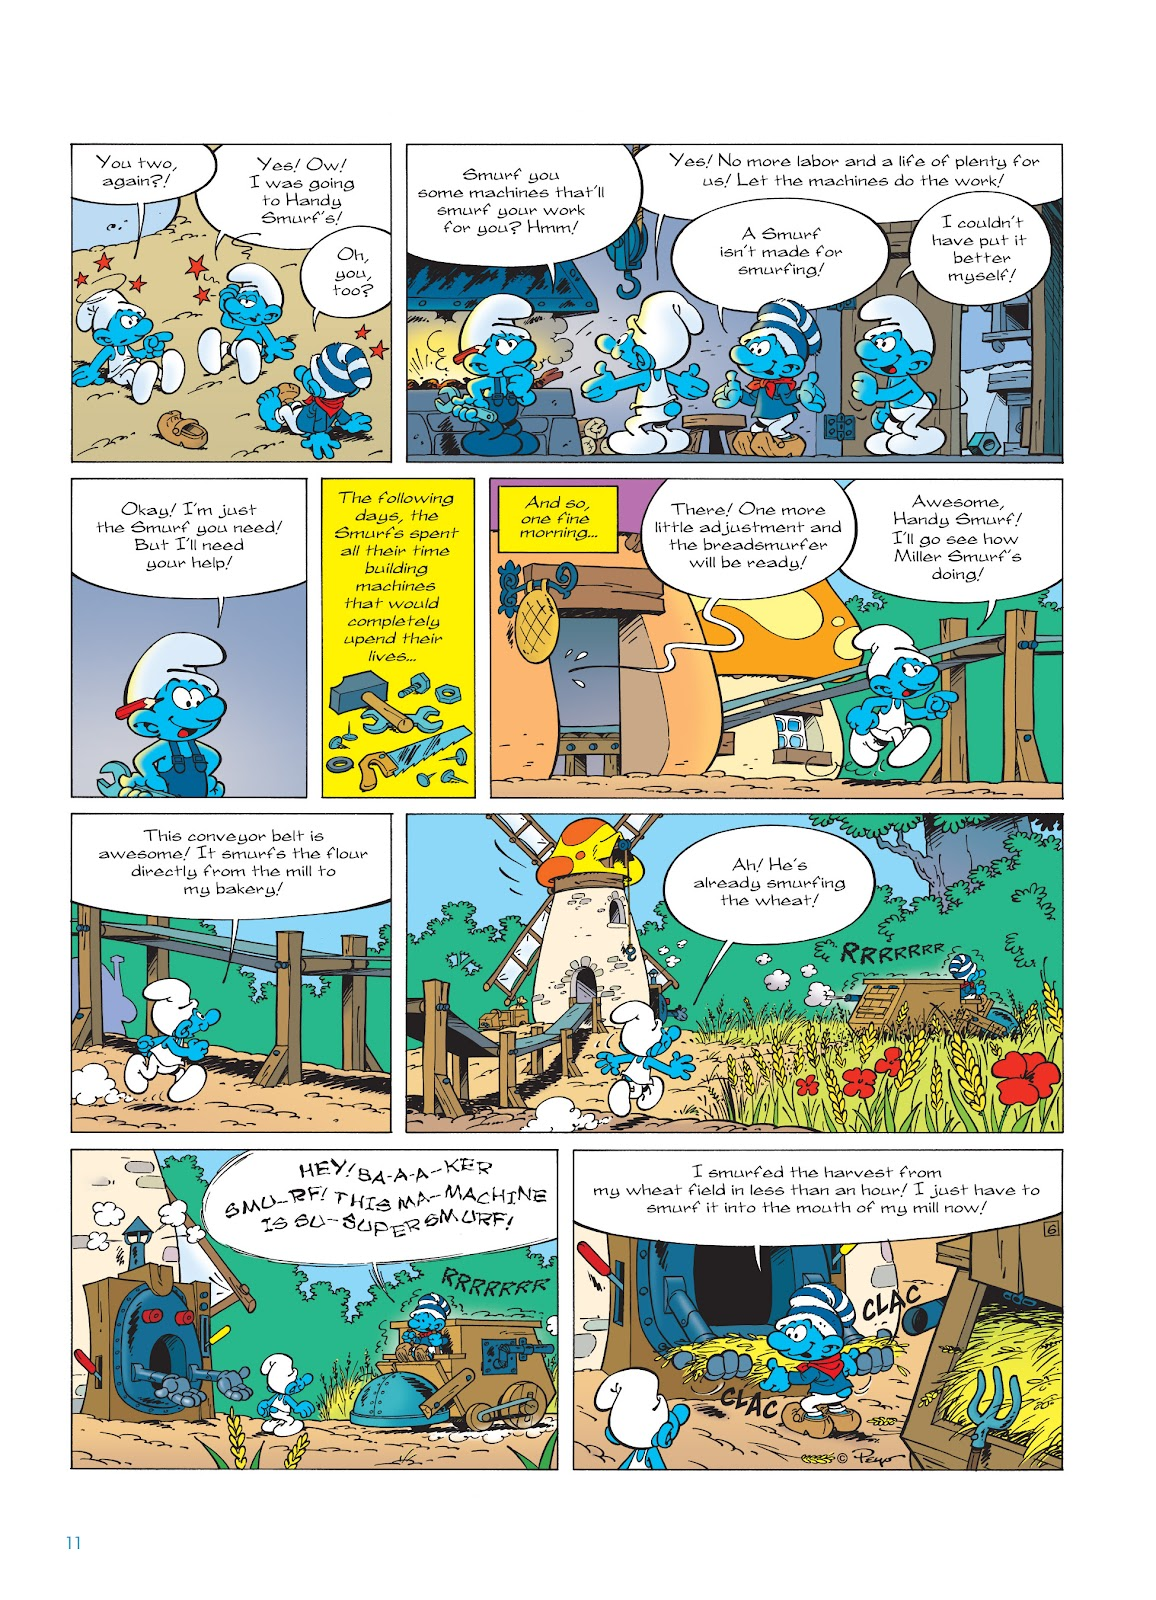 Read online The Smurfs comic -  Issue #23 - 11